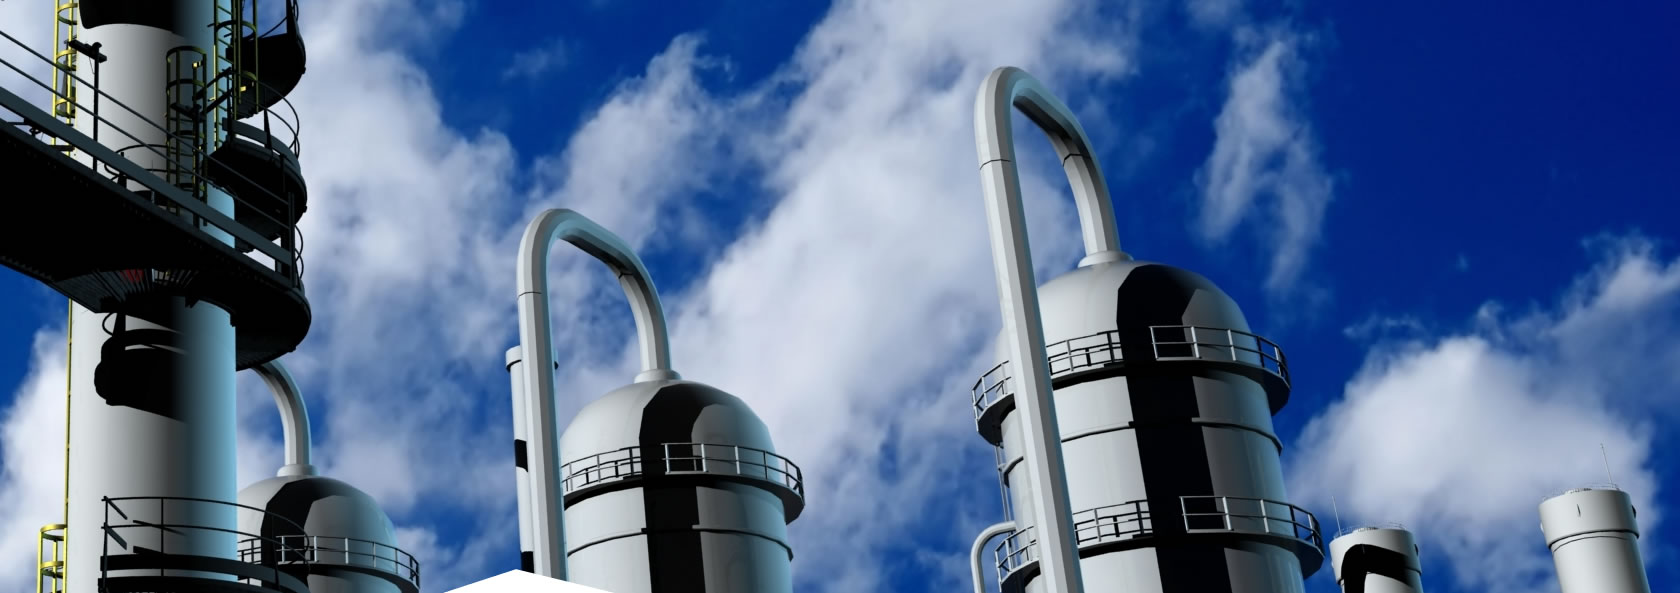 District Heating Sector Data and Policy Research